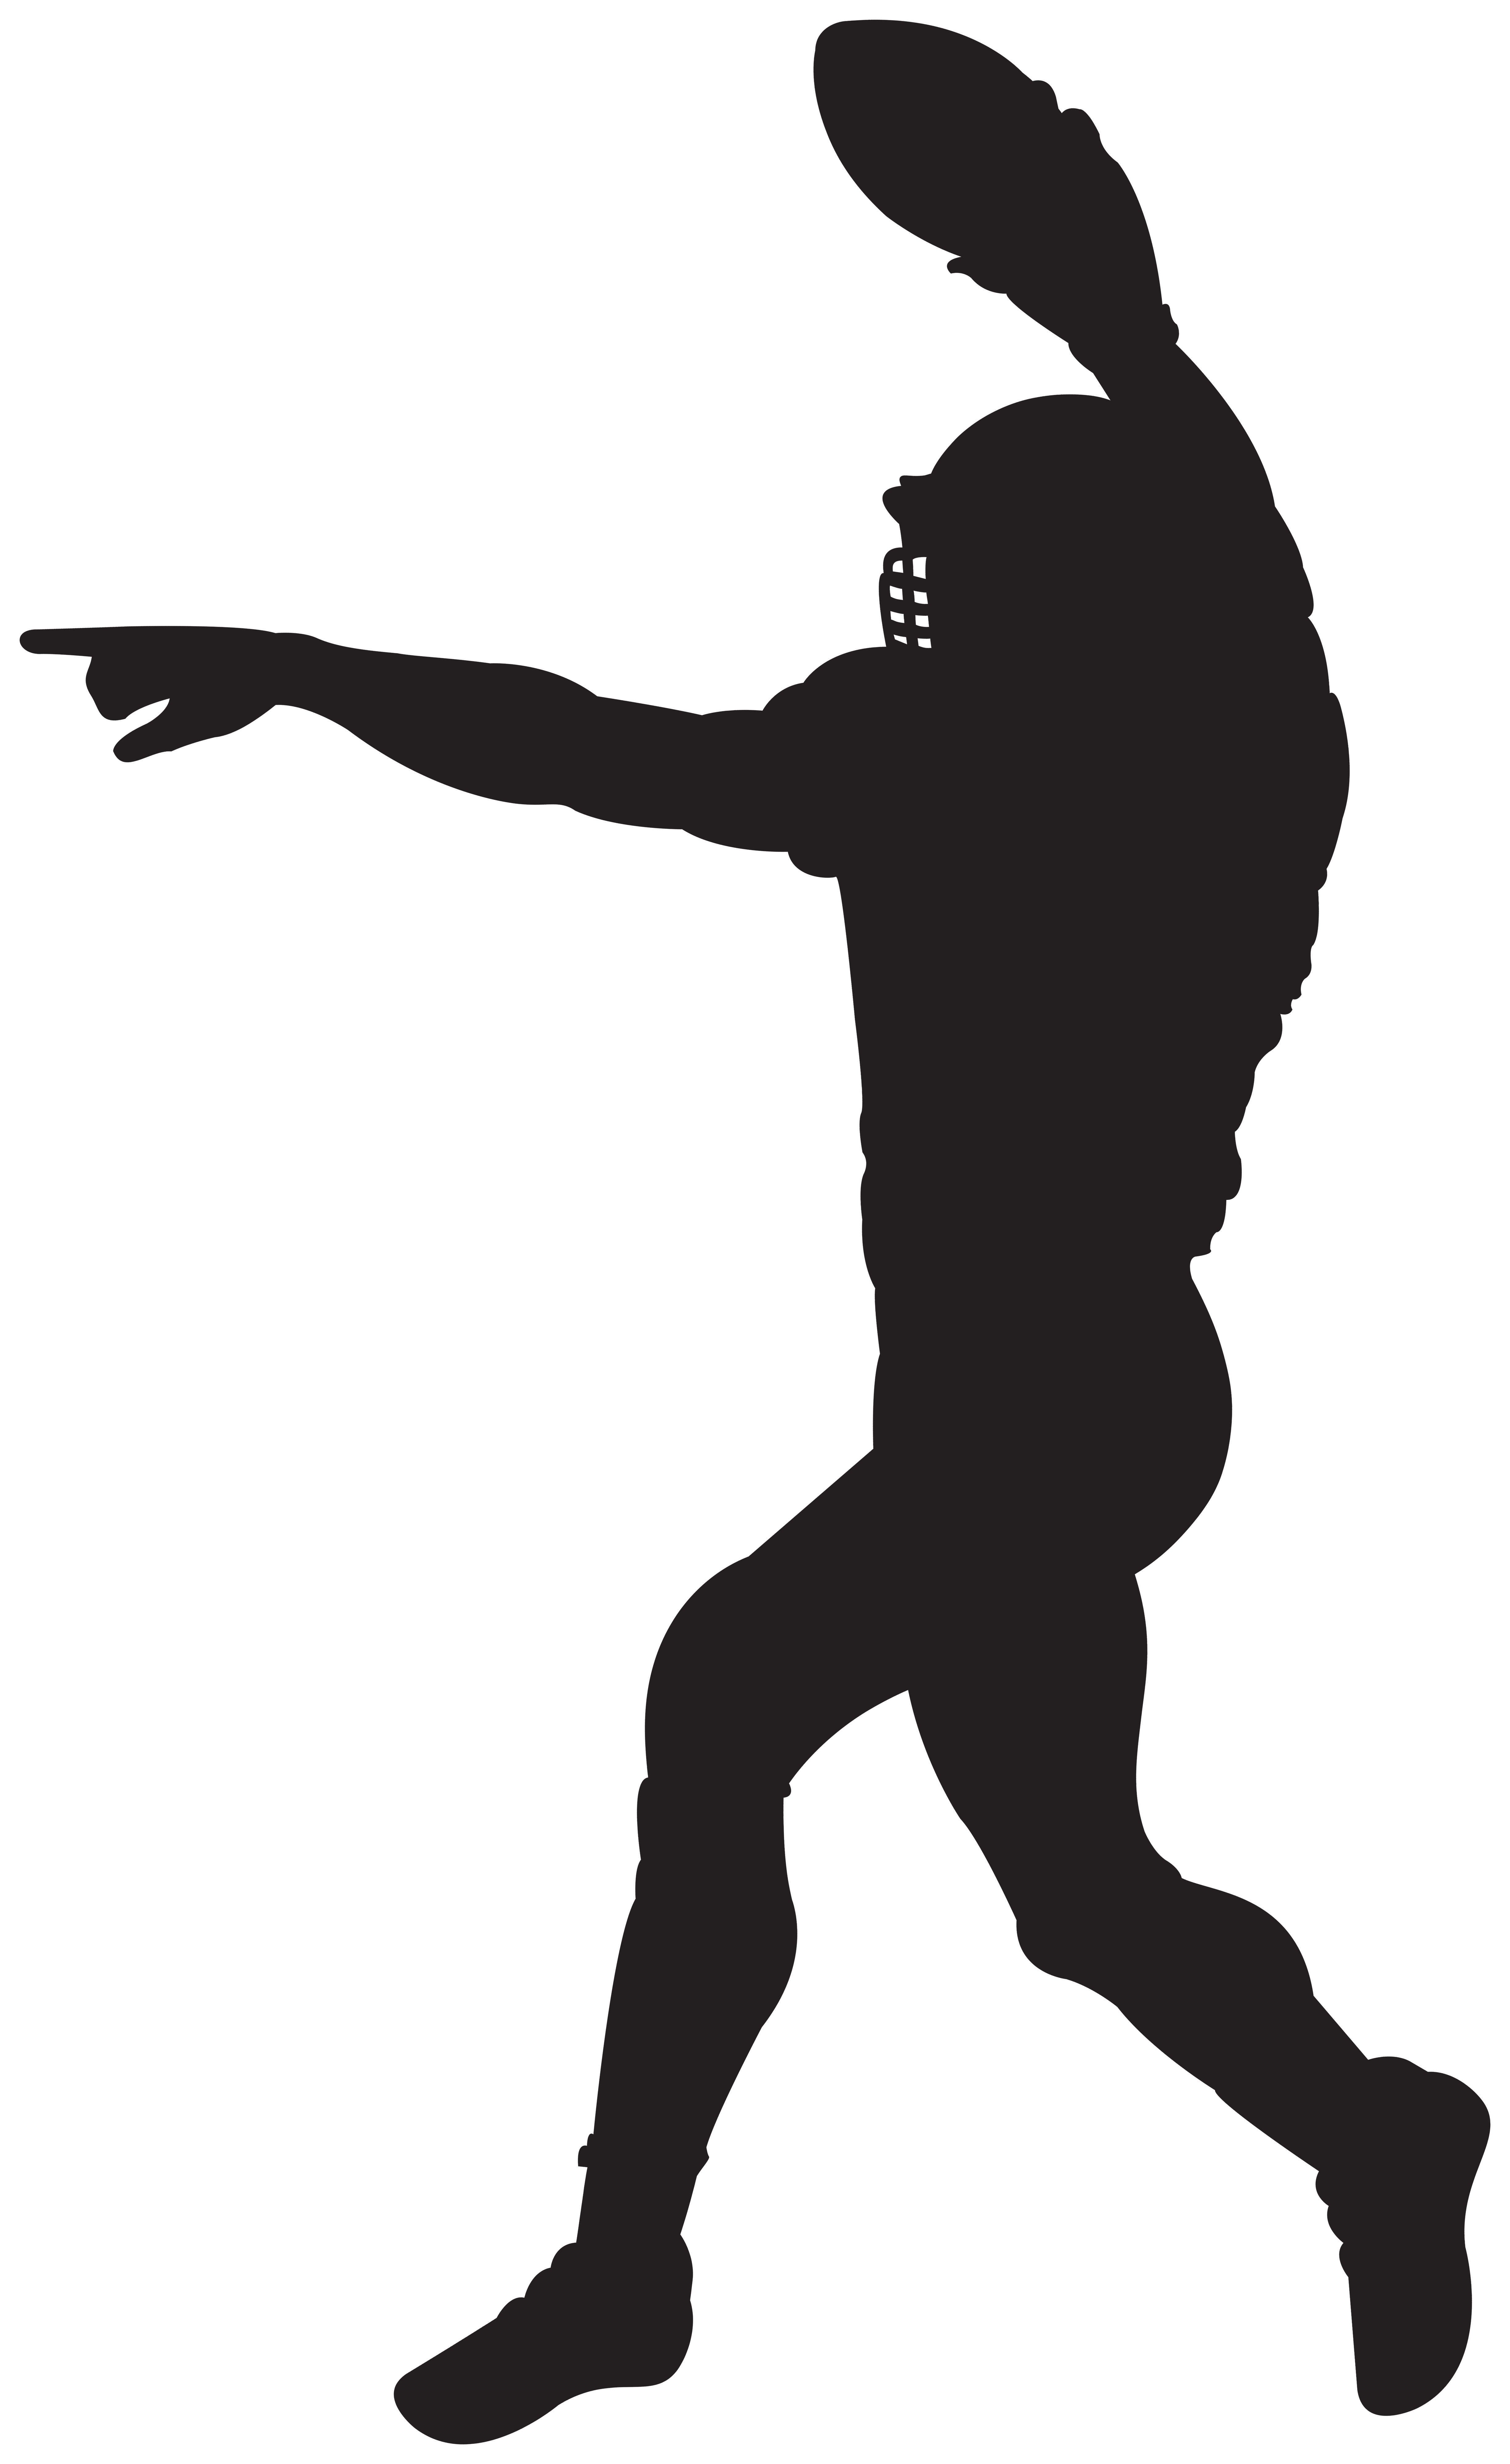 American Football Player Silhouette Clipart Image.